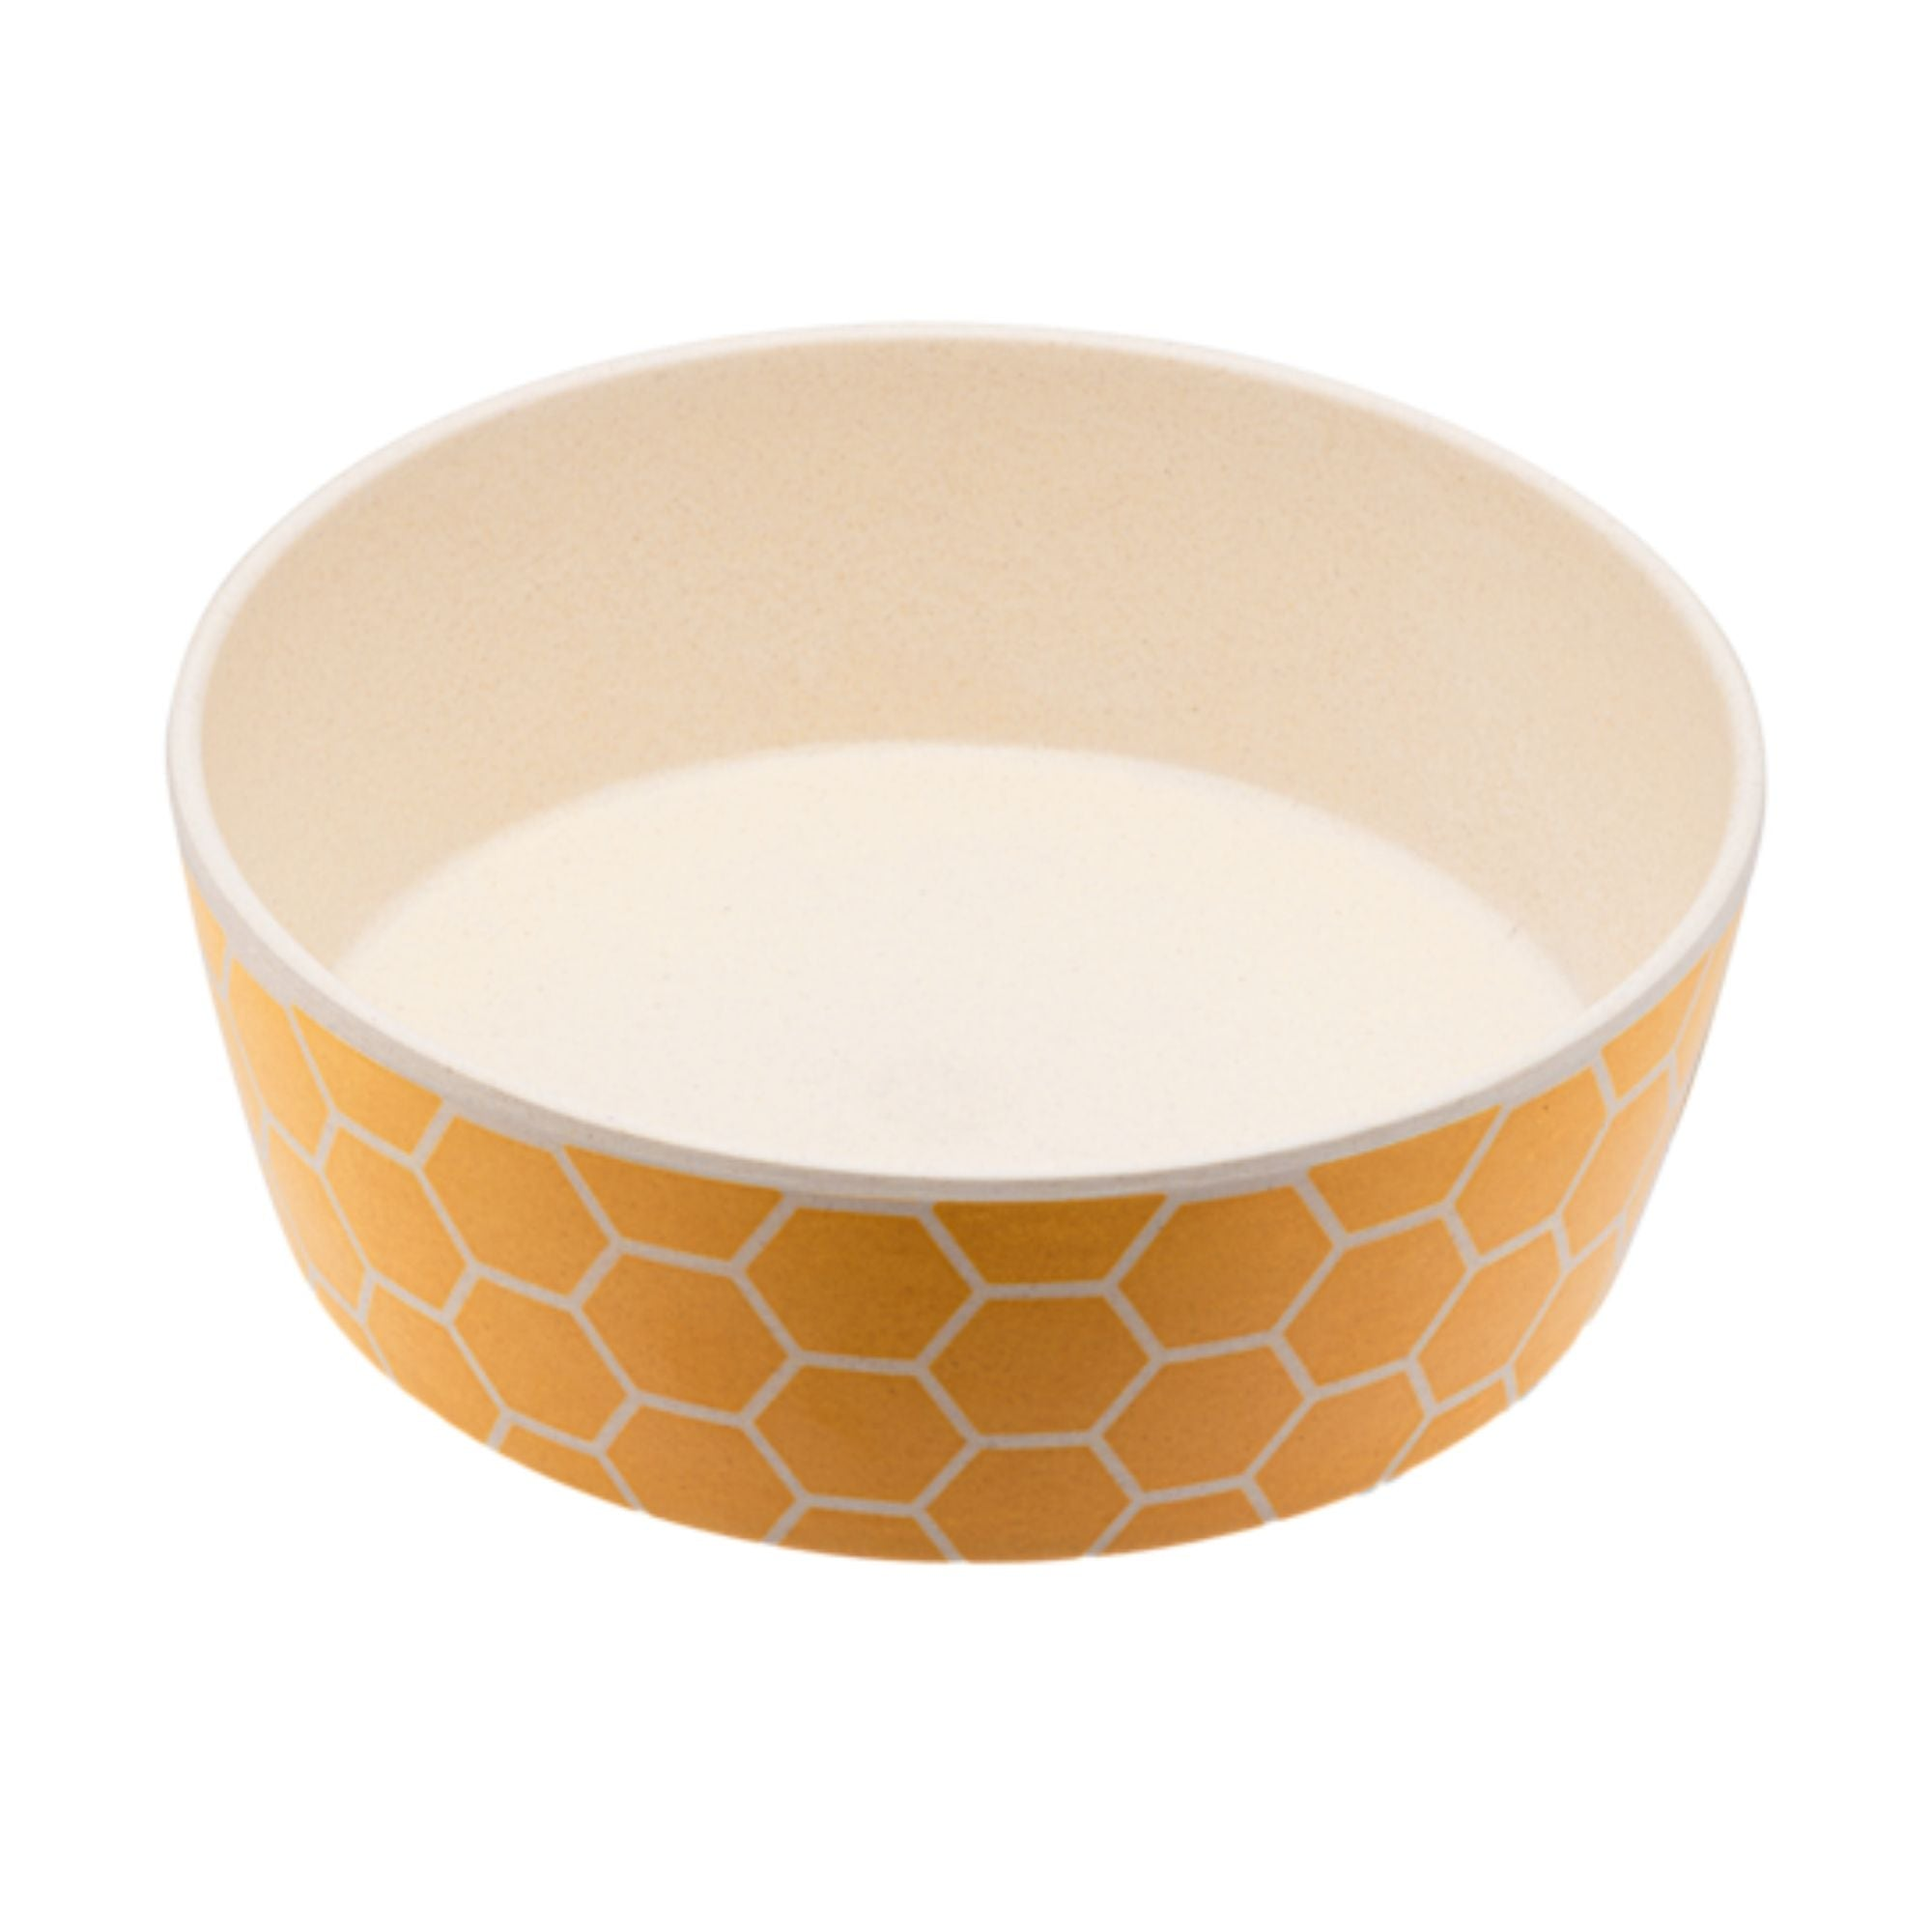 Beco Pets Eco-Friendly Bamboo Dog Pet Bowl Honeycomb | Barks & Bunnies